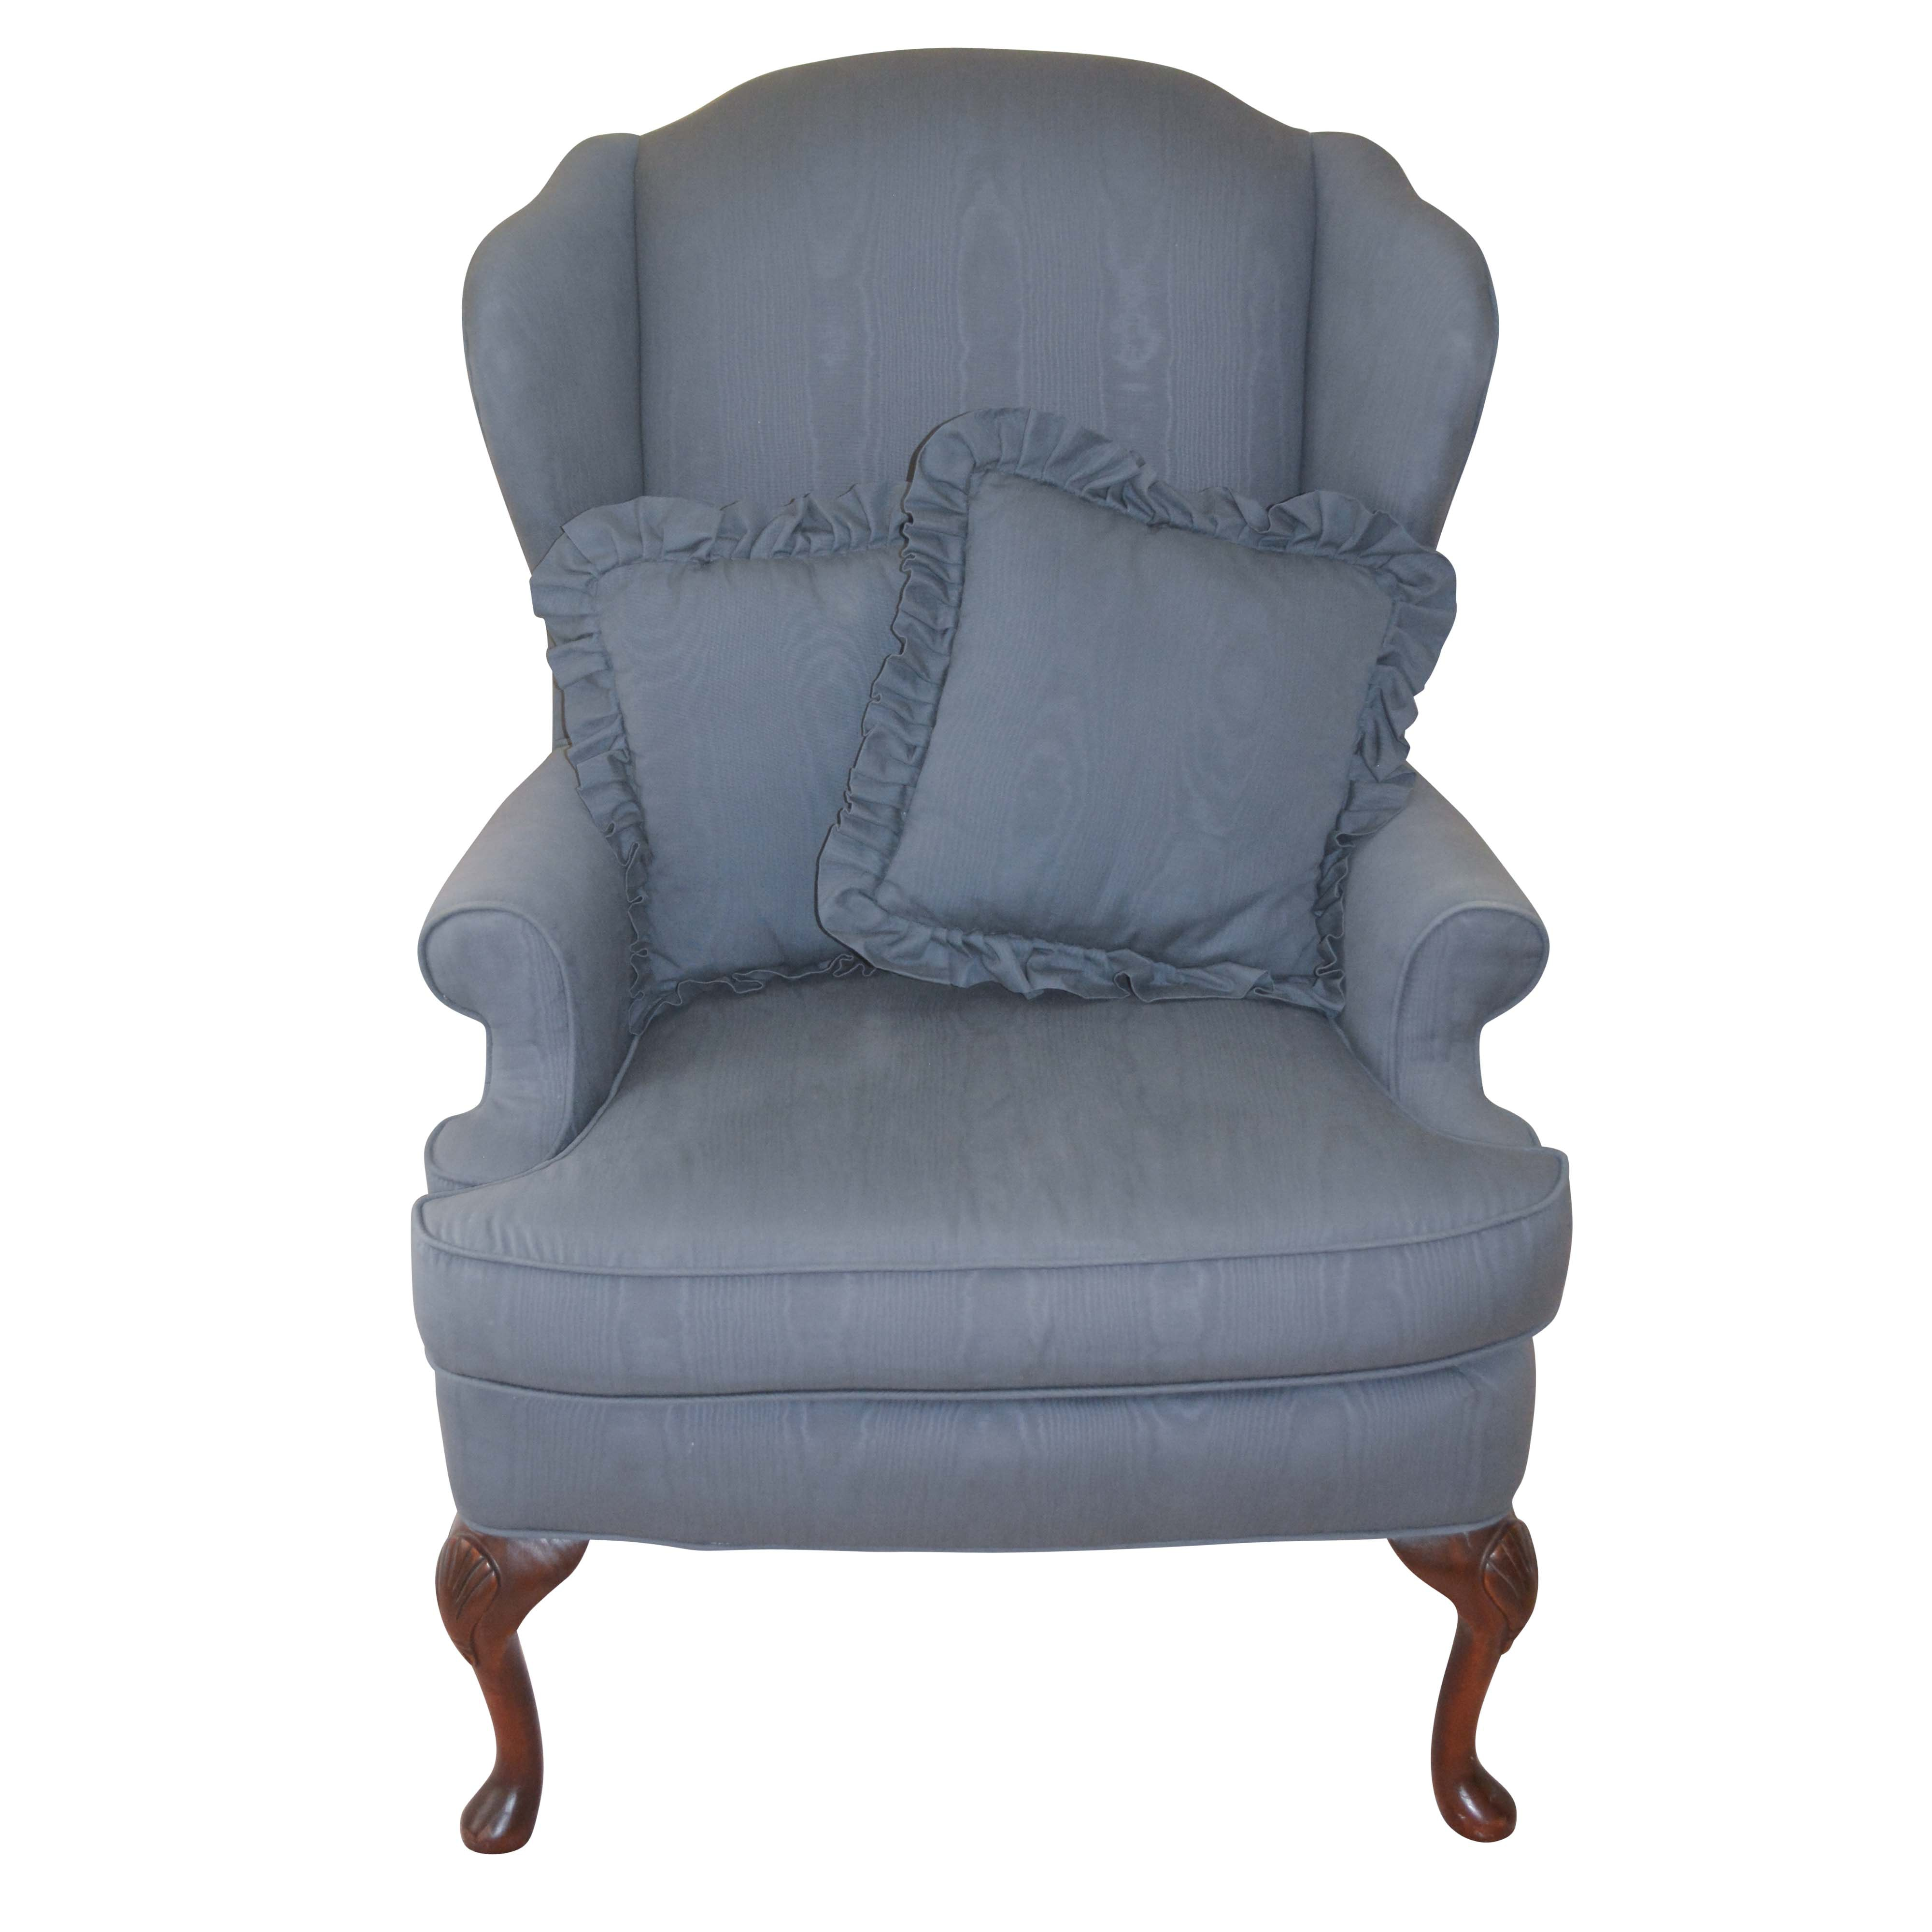 Vintage Queen Anne Style Blue Upholstered Wingback Chair by LT Designs